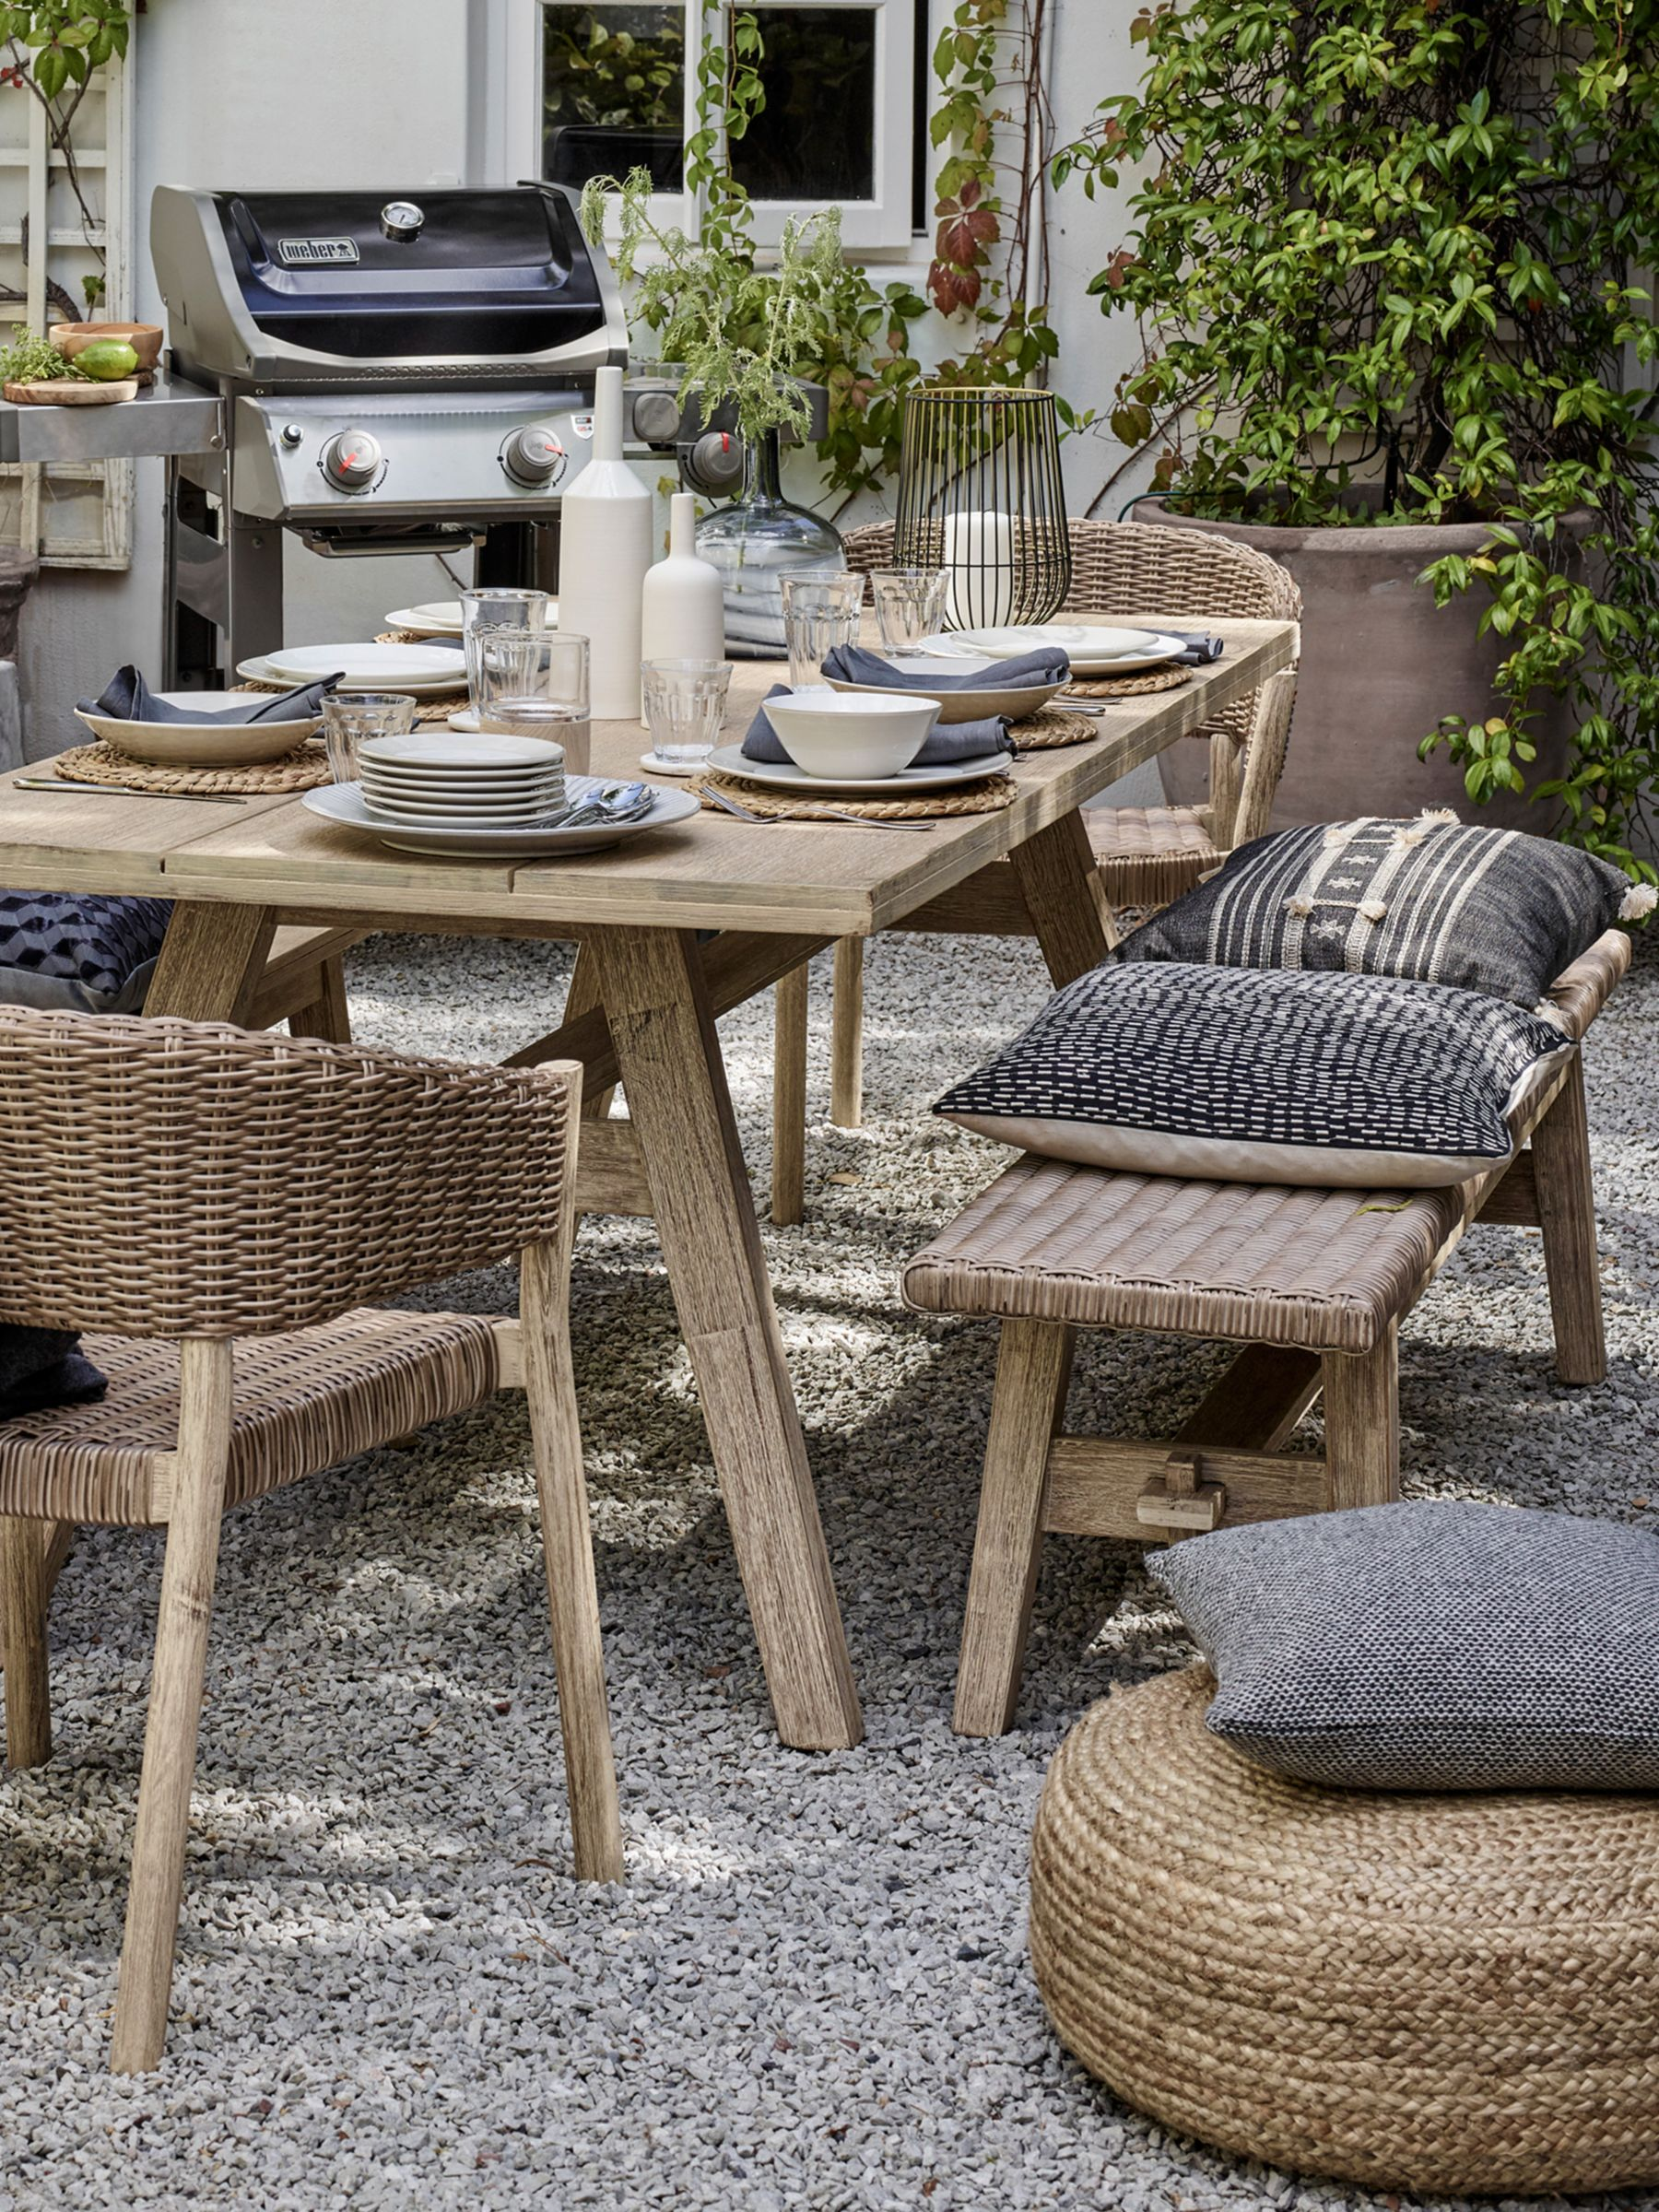 Strange Garden Furniture Garden Tables Chairs Rattan John Home Interior And Landscaping Elinuenasavecom